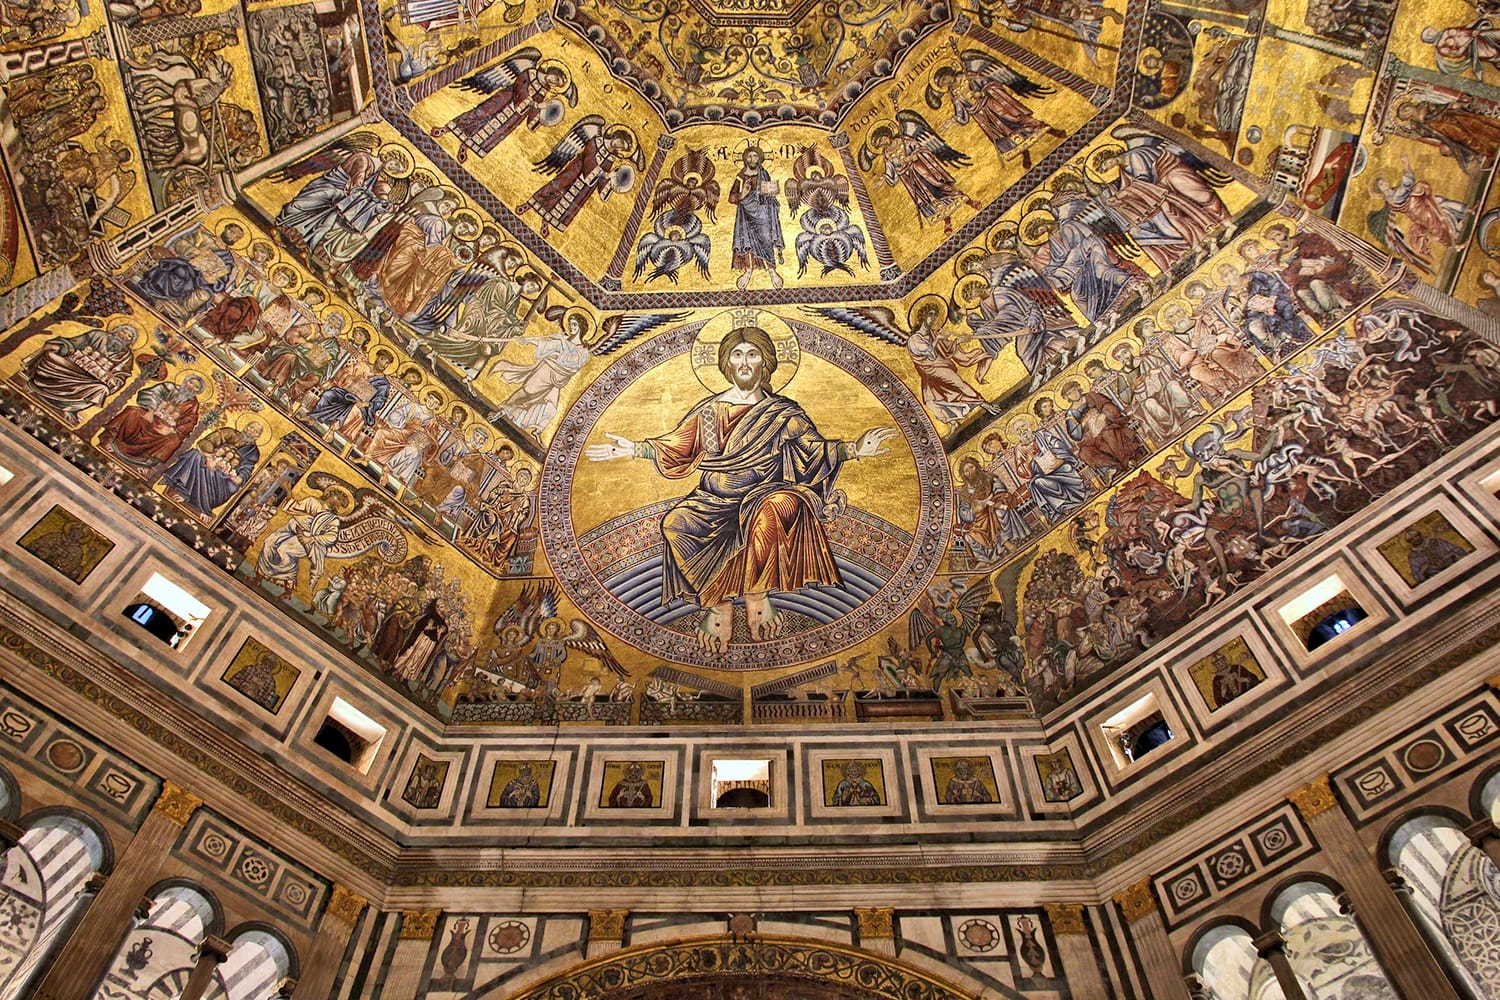 Interior view of the Baptistery of Saint John in Florence, Italy. The landmark features Florentine Romanesque style and has mosaics by Jacopo Torriti.